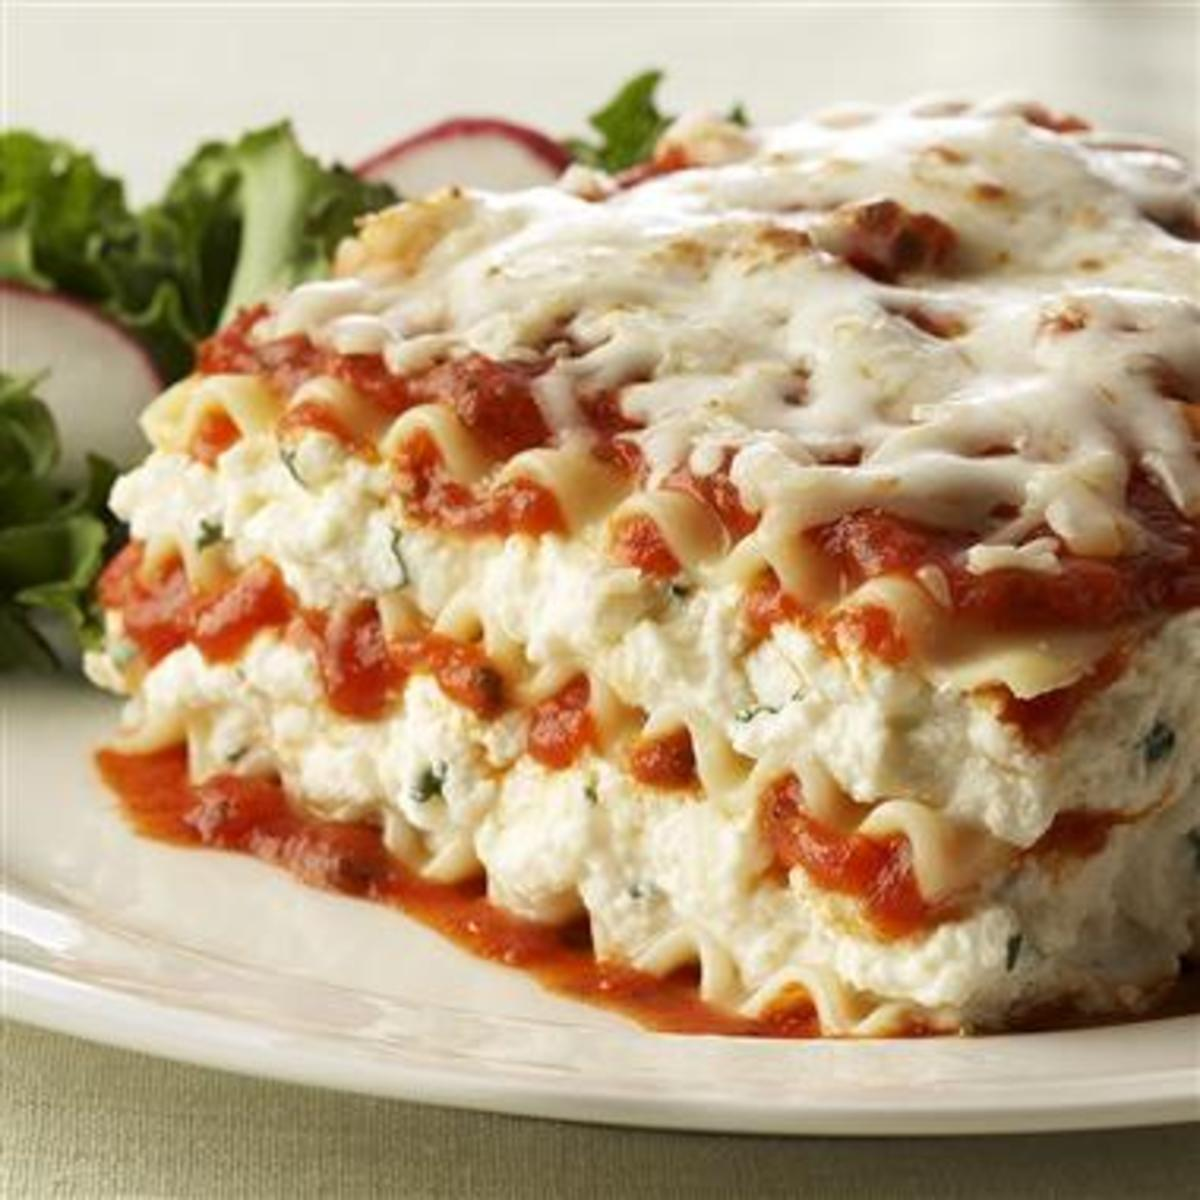 My Family's Favorite Easy Lasagna Recipe